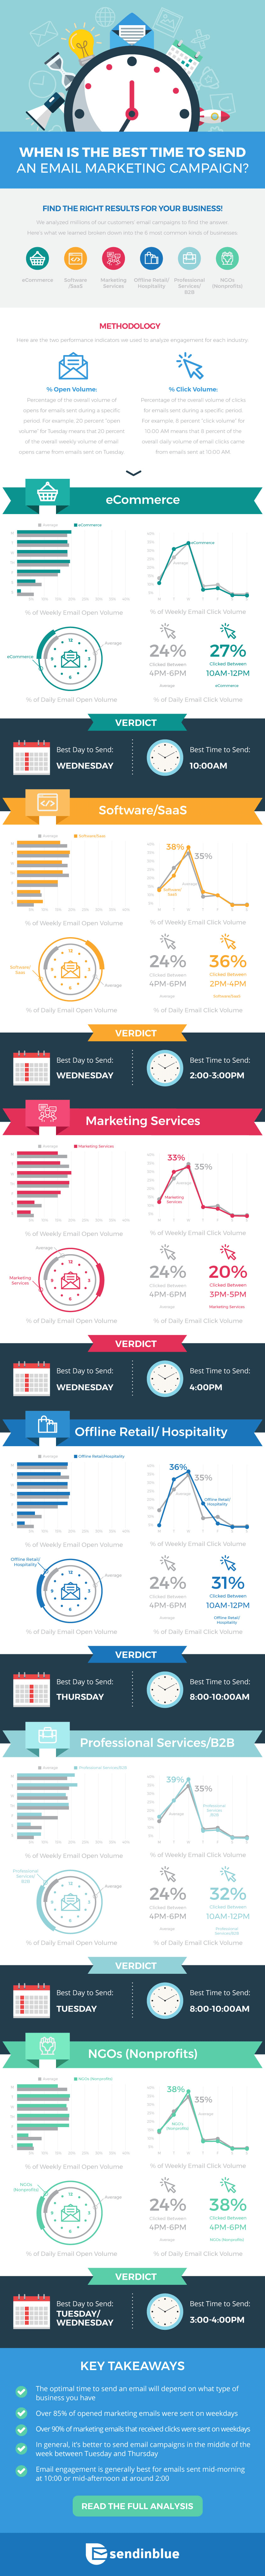 SIB-Best-Day-Time-Email-Infographic